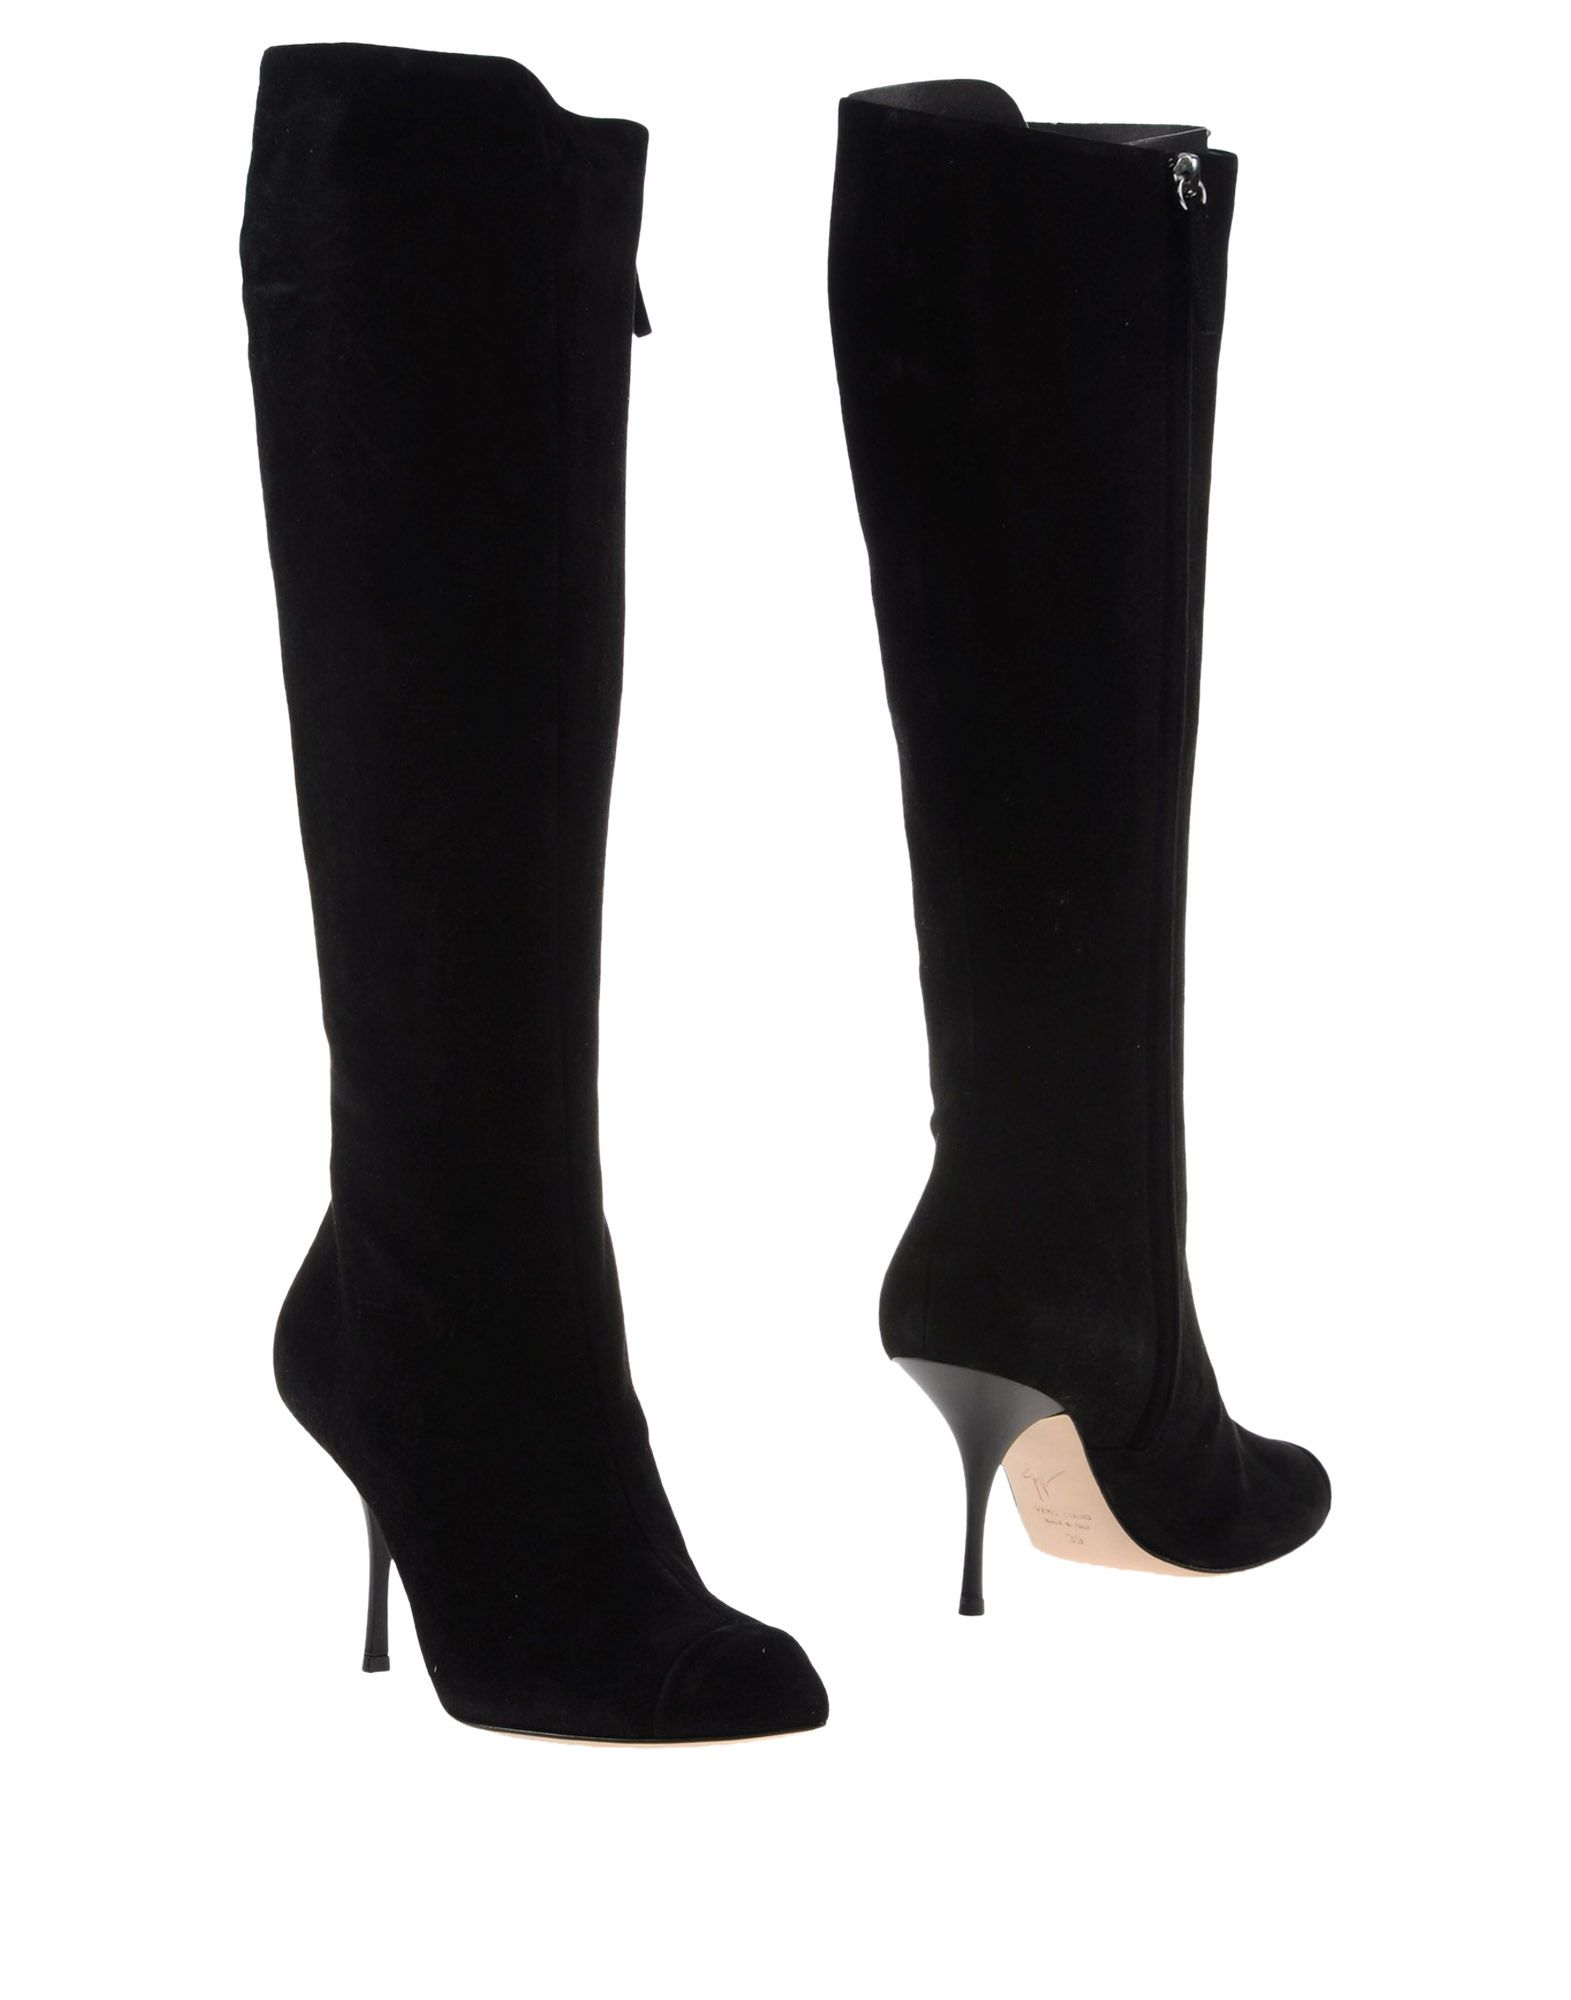 giuseppe zanotti suede knee high boots in black lyst